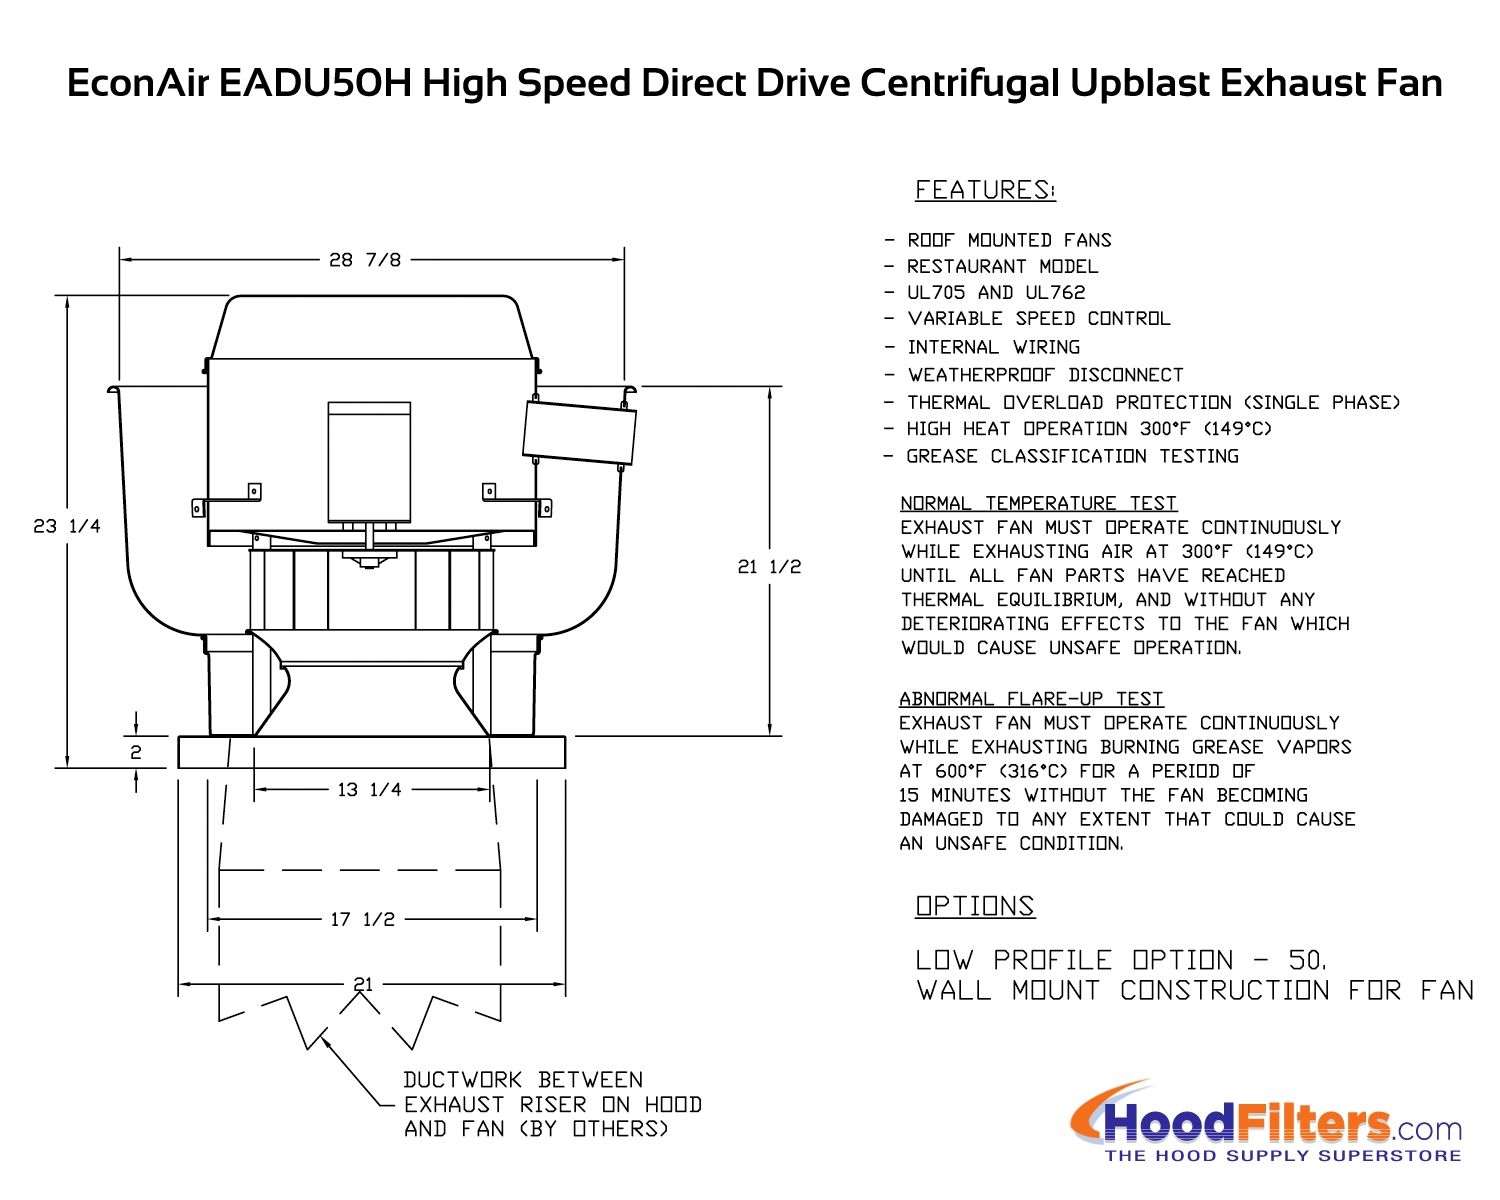 Upblast Exhaust Fan Diagram Tools